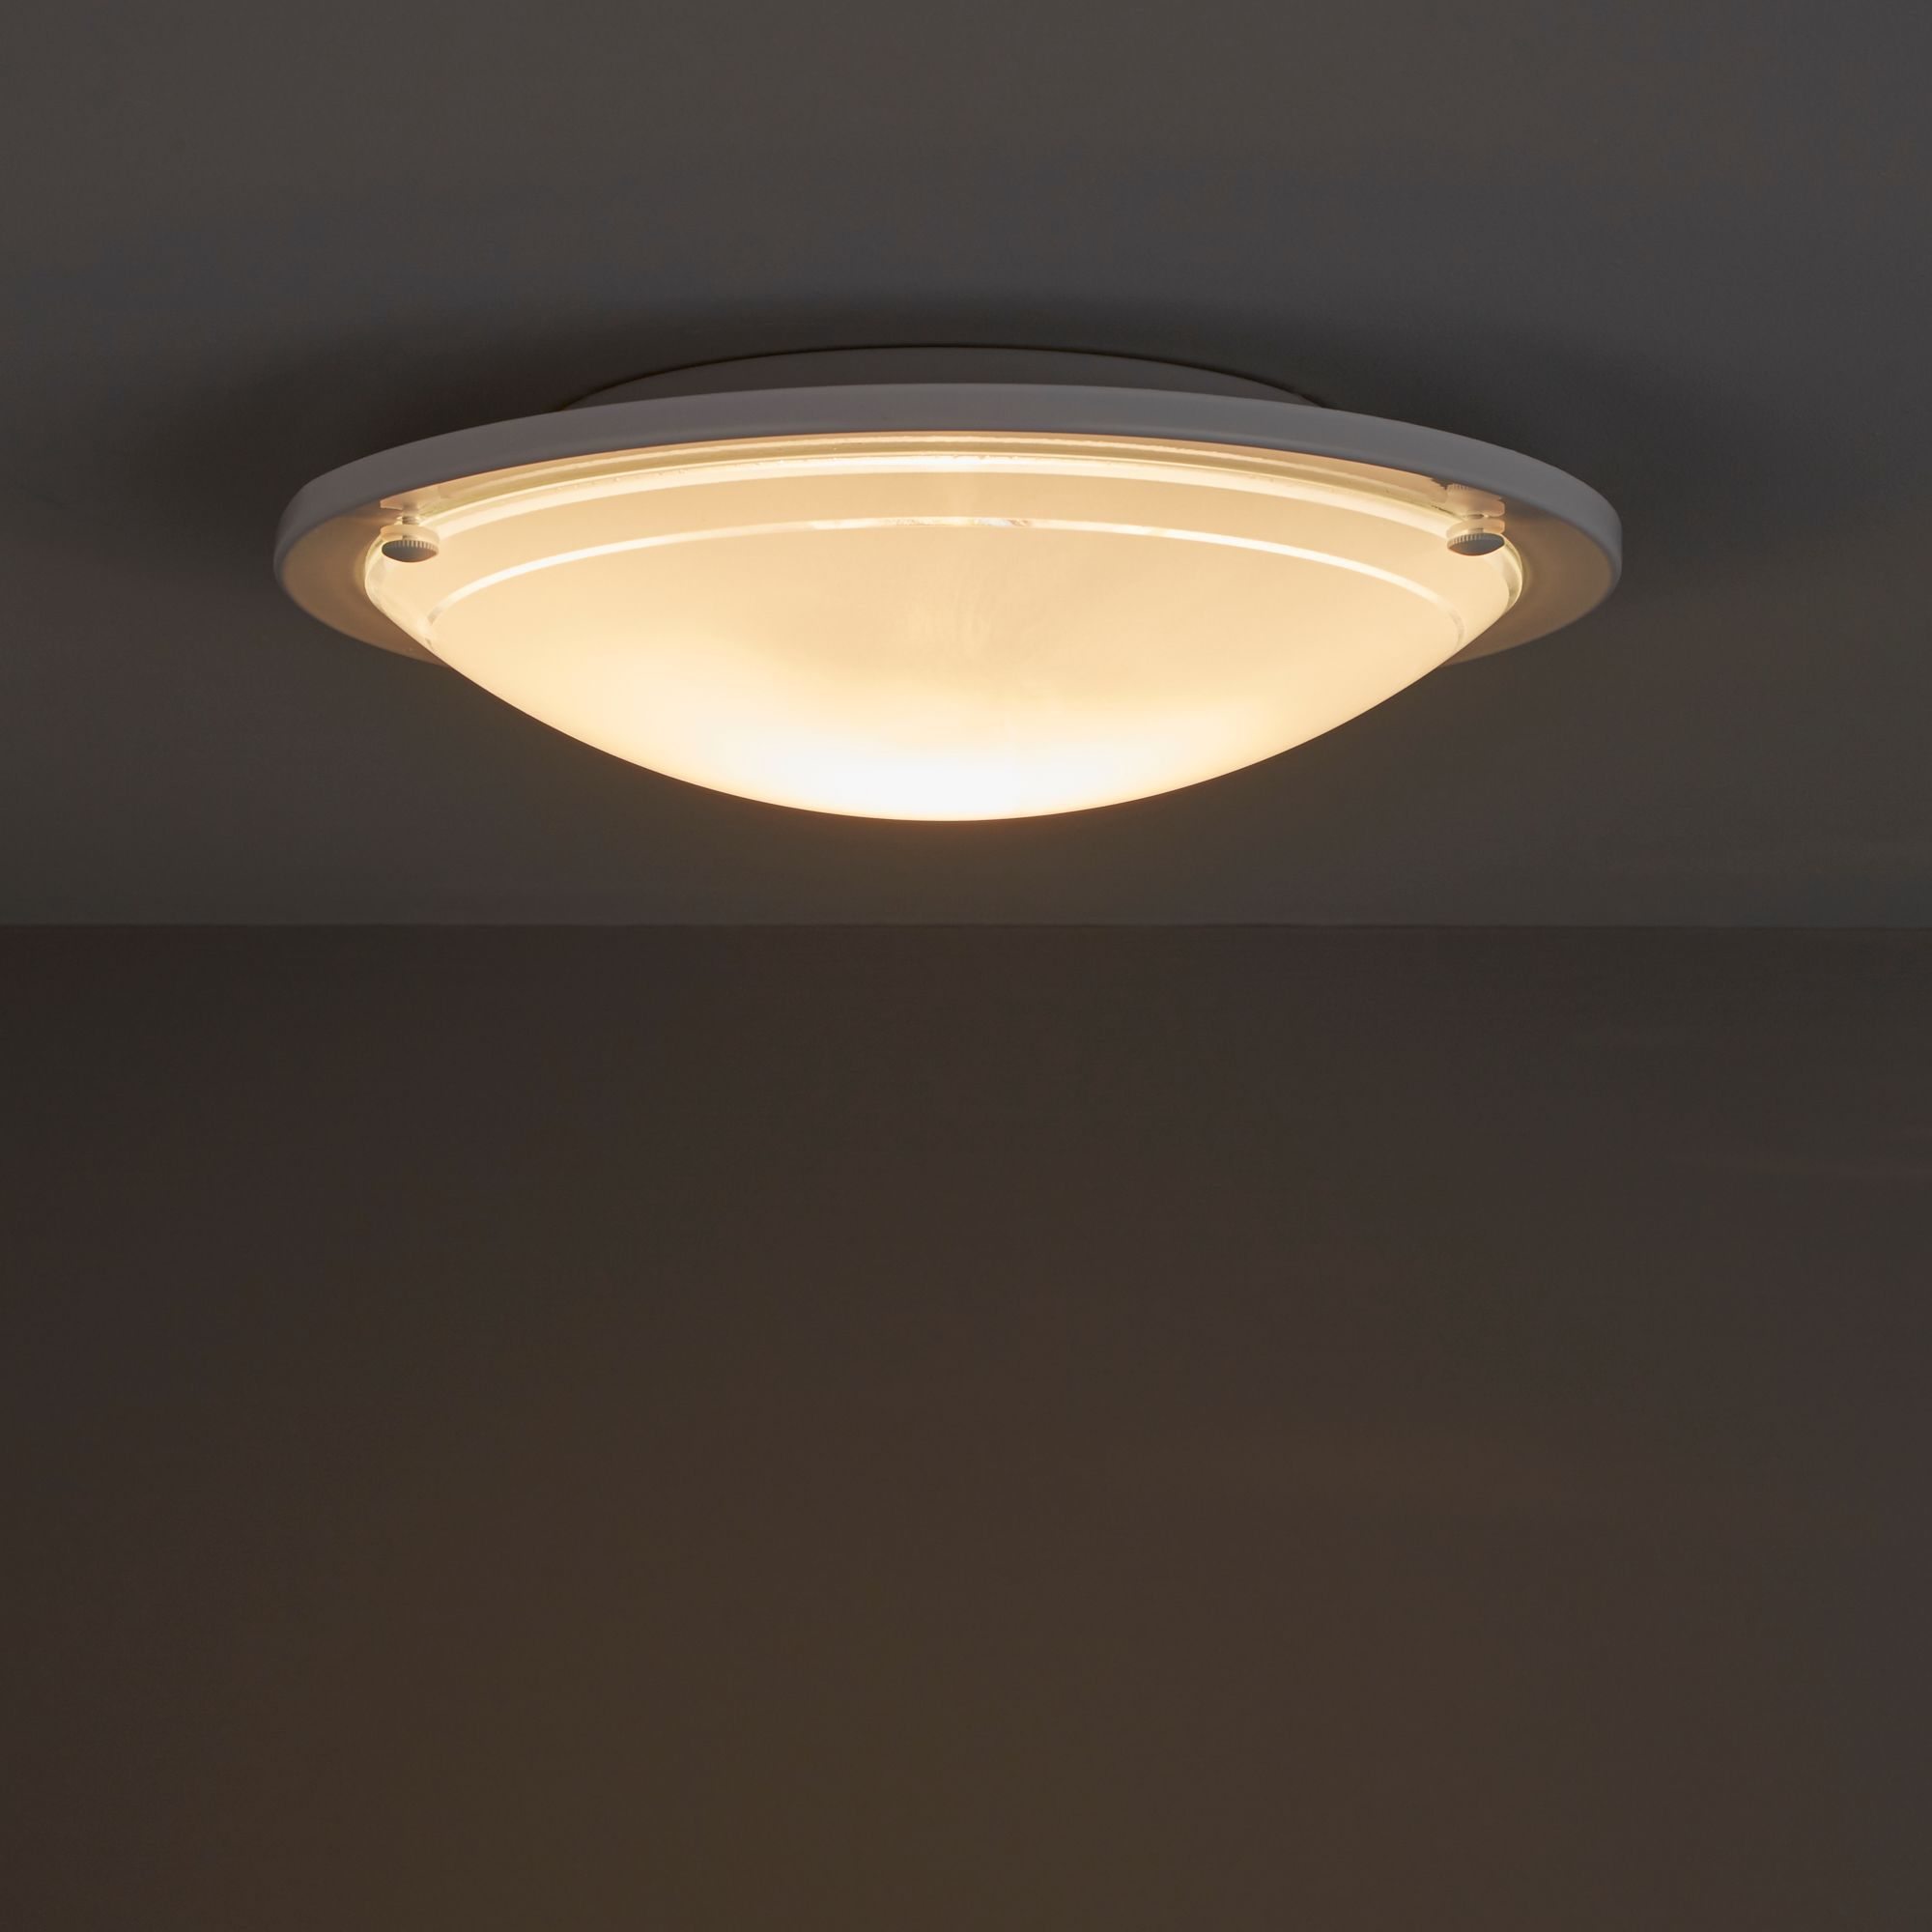 Hubaa White Ceiling light